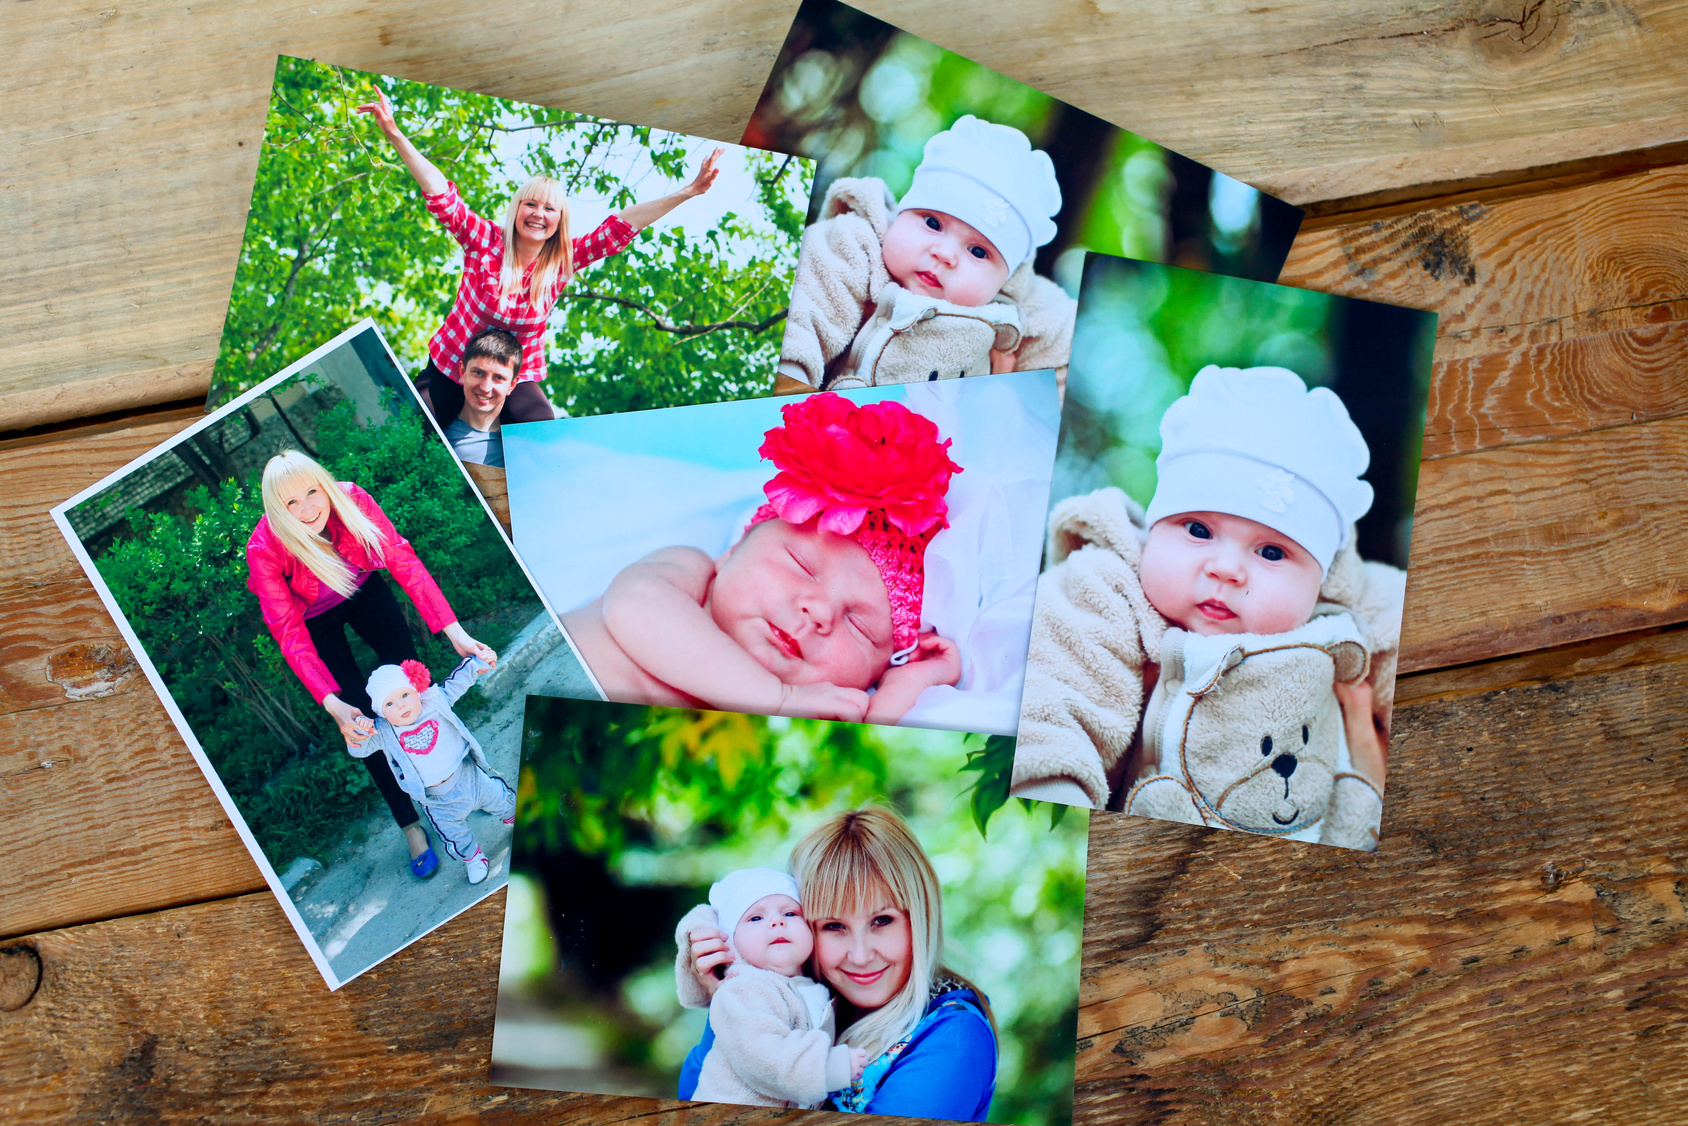 High-Quality Prints - Each image is beautifully edited and printed on professional-grade, luster photo paper. 4x6 – $2.50      5x7 – $3.75      8X10 – $7.5011X14 – $16      16X20 – $30+plus $6 shipping & handling per order